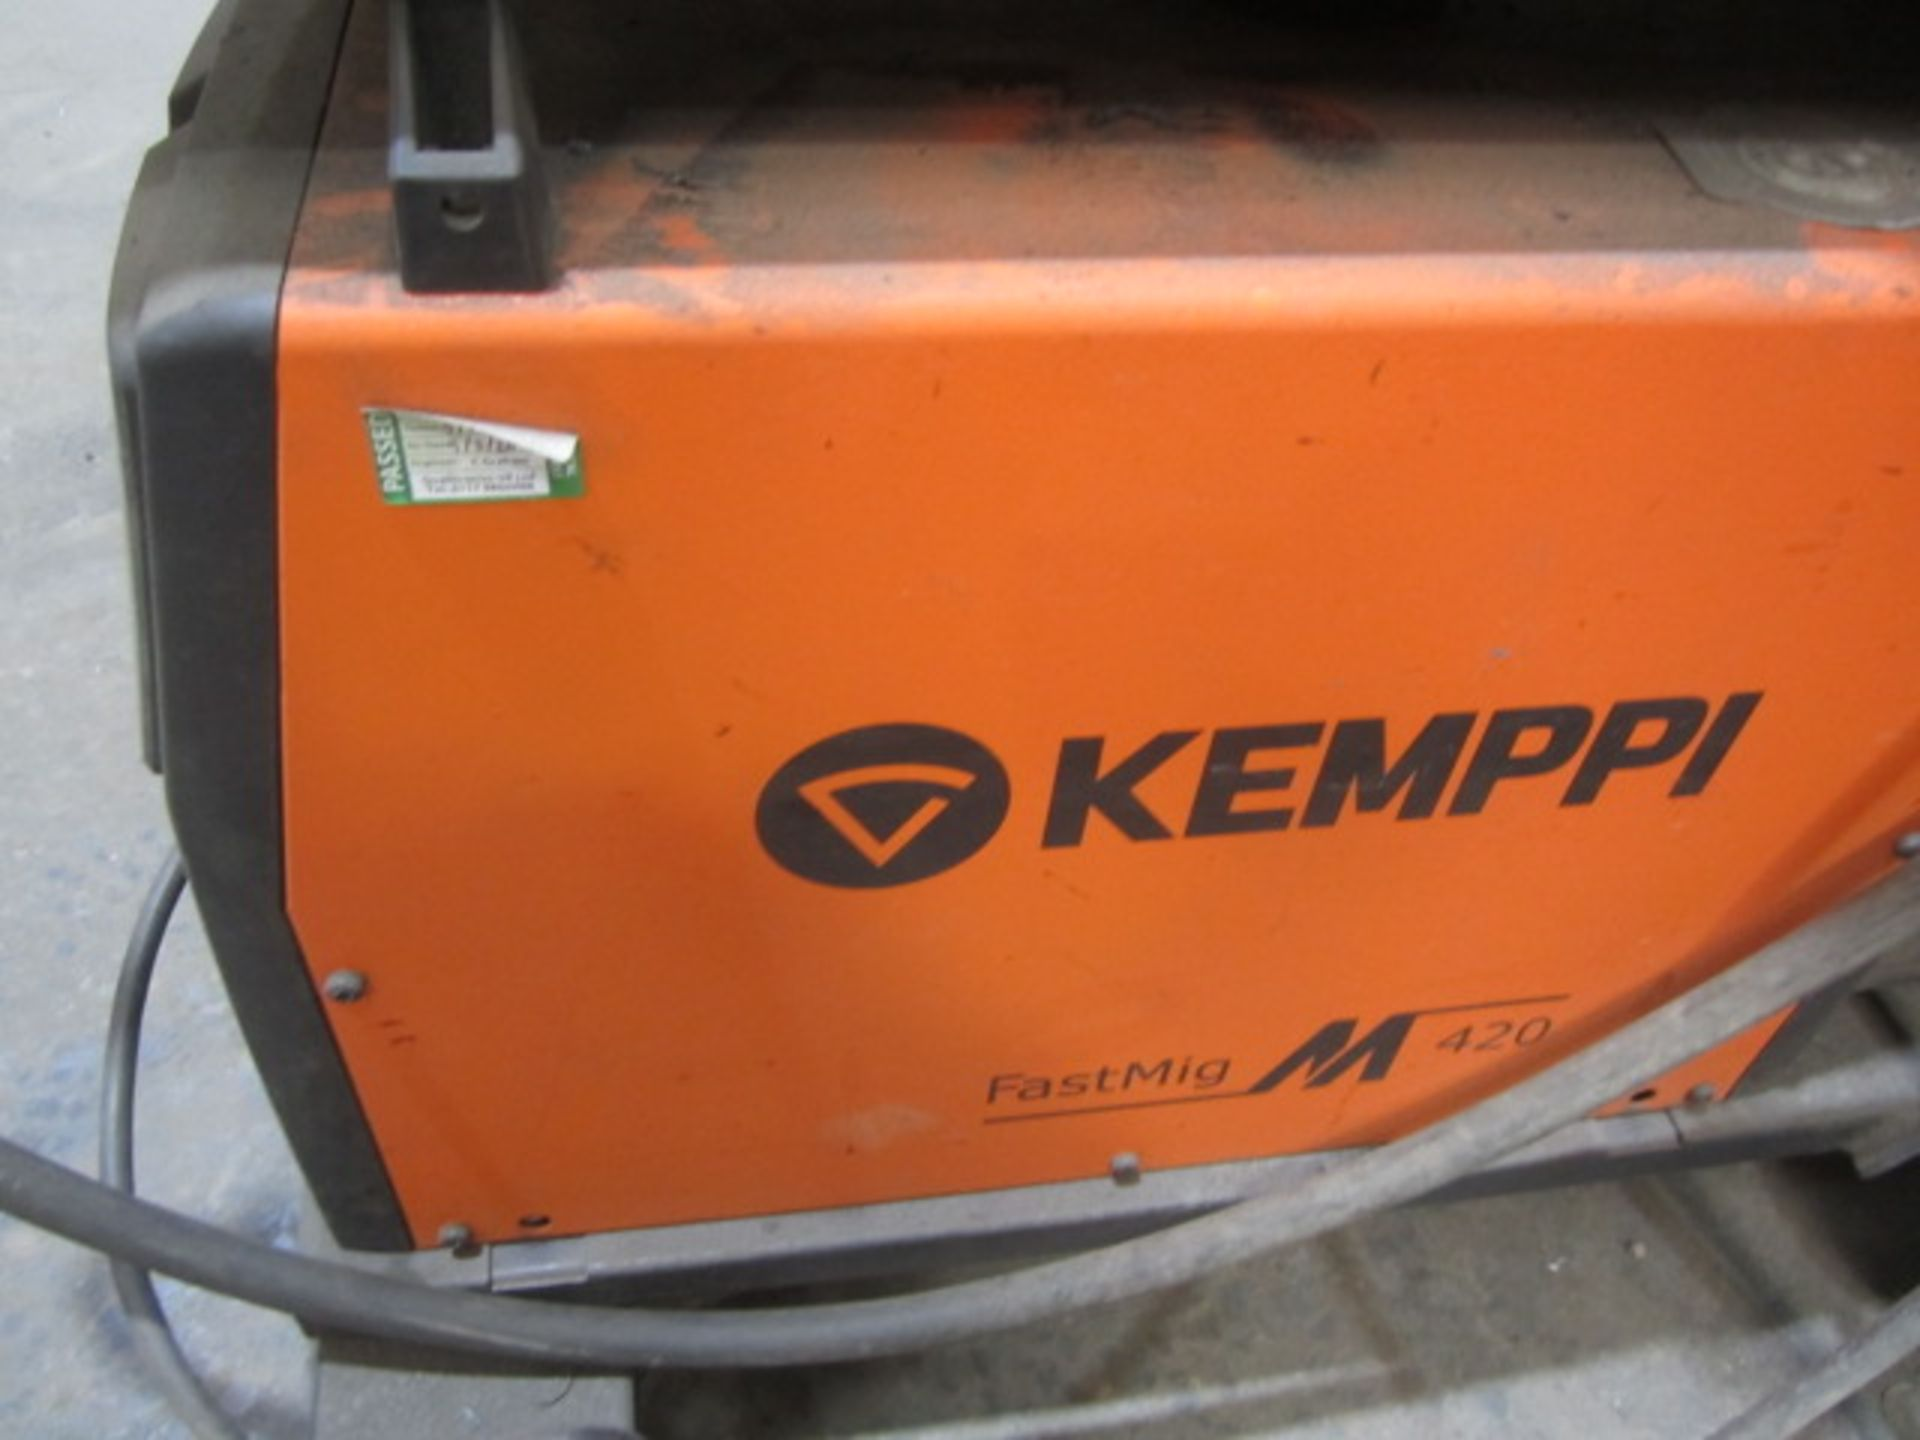 Kemppi Fast Mig M420 mig welder, serial no. 2694679, with Fast Mig MXF65 wire feeder, serial no. - Image 5 of 7